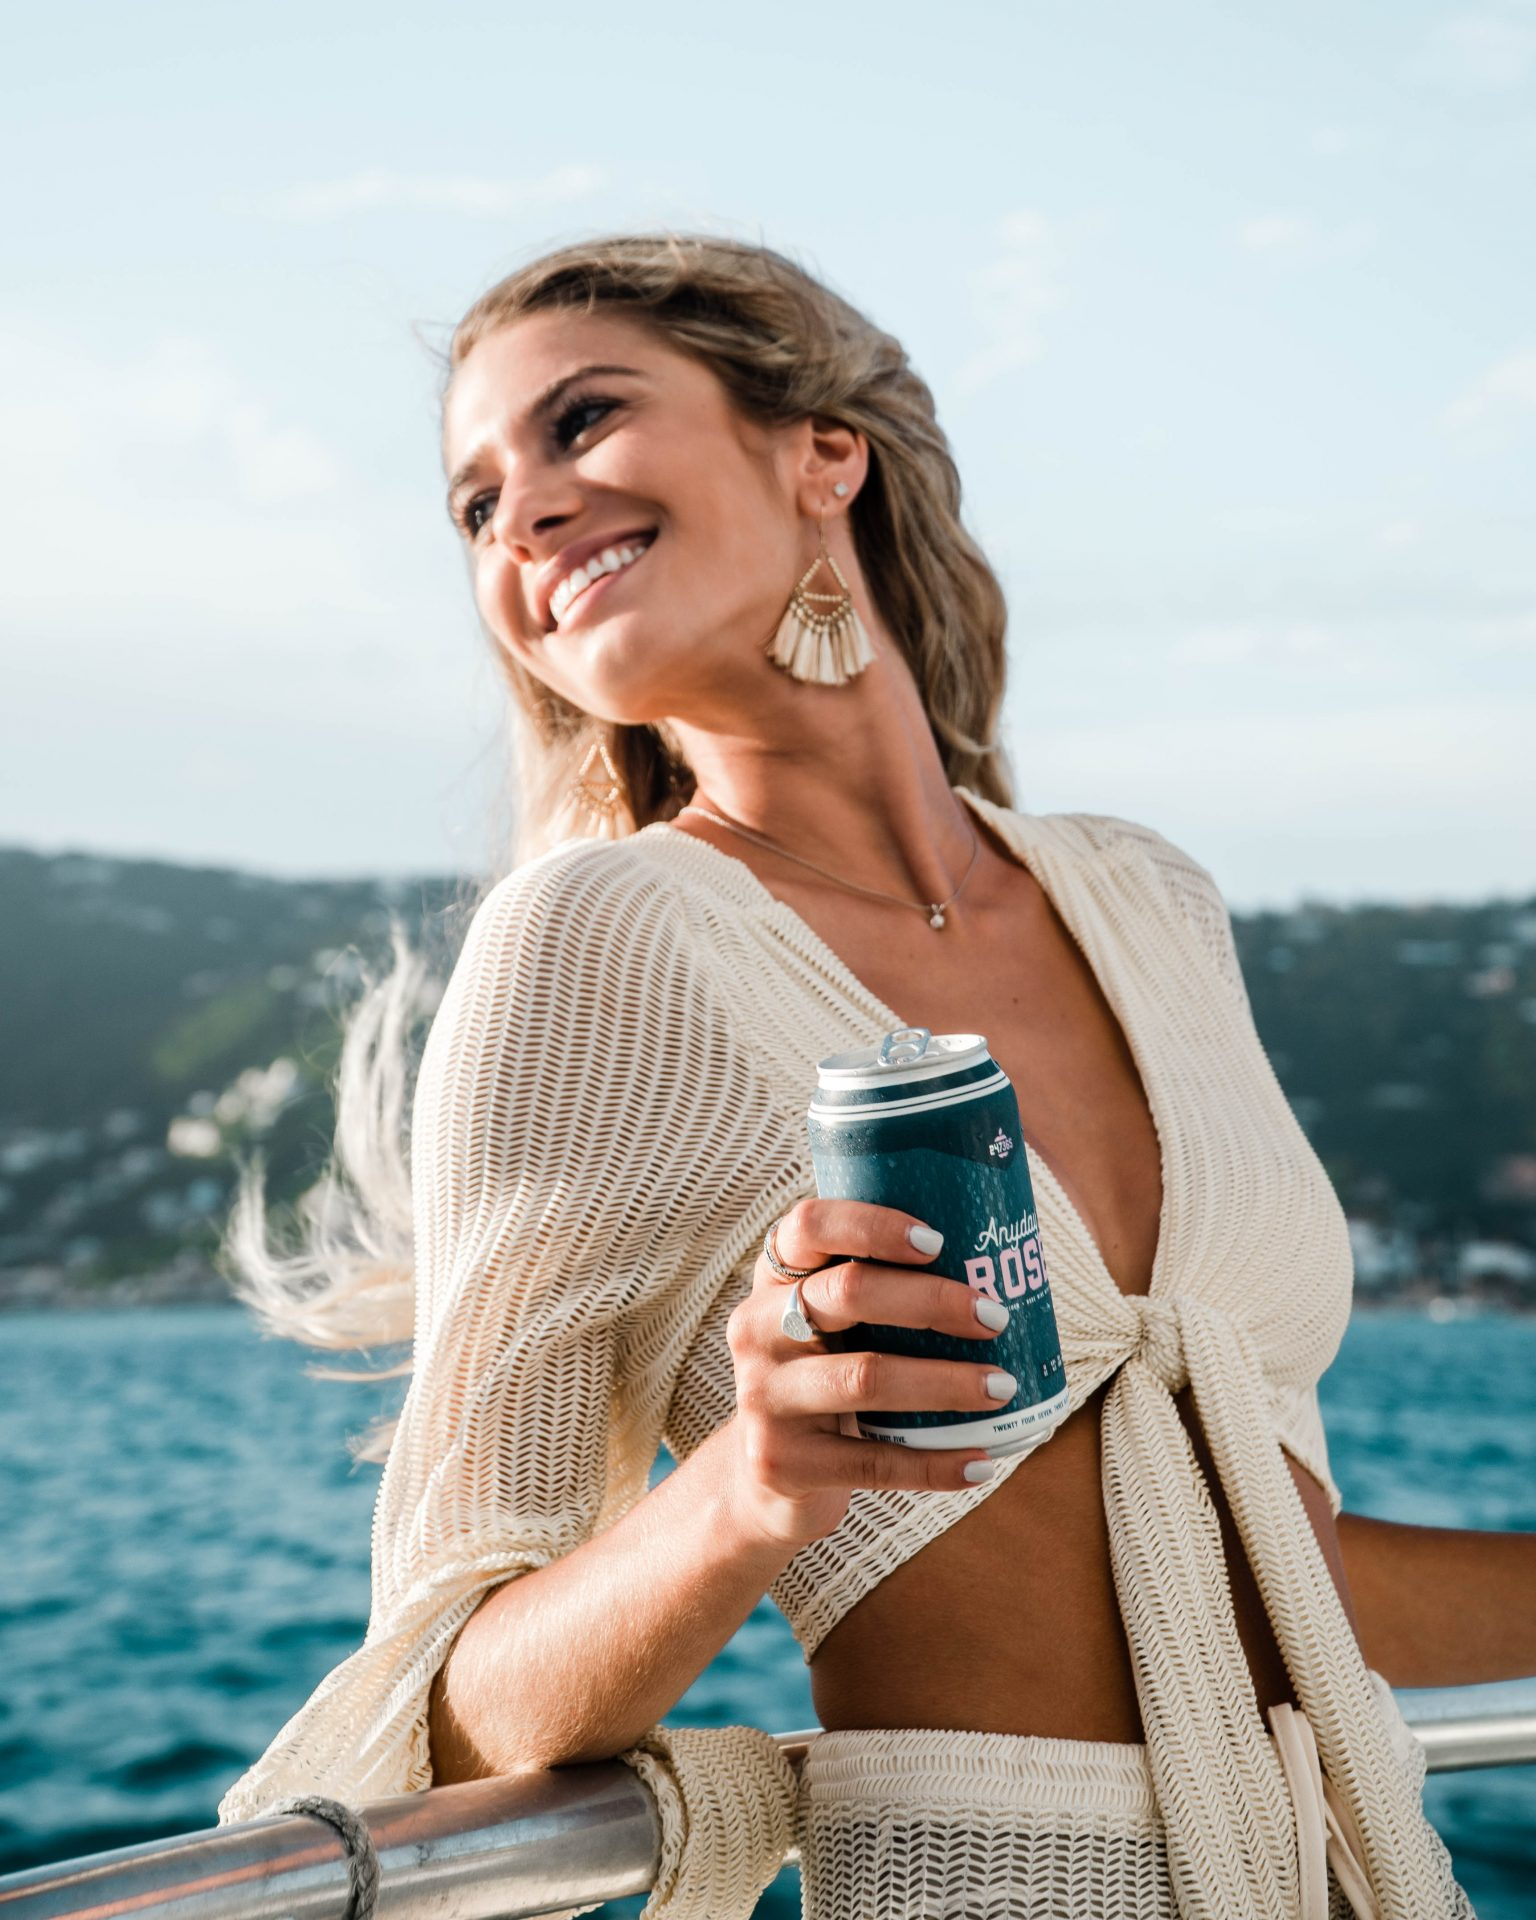 Girl on a Boat with Anyday Rosé